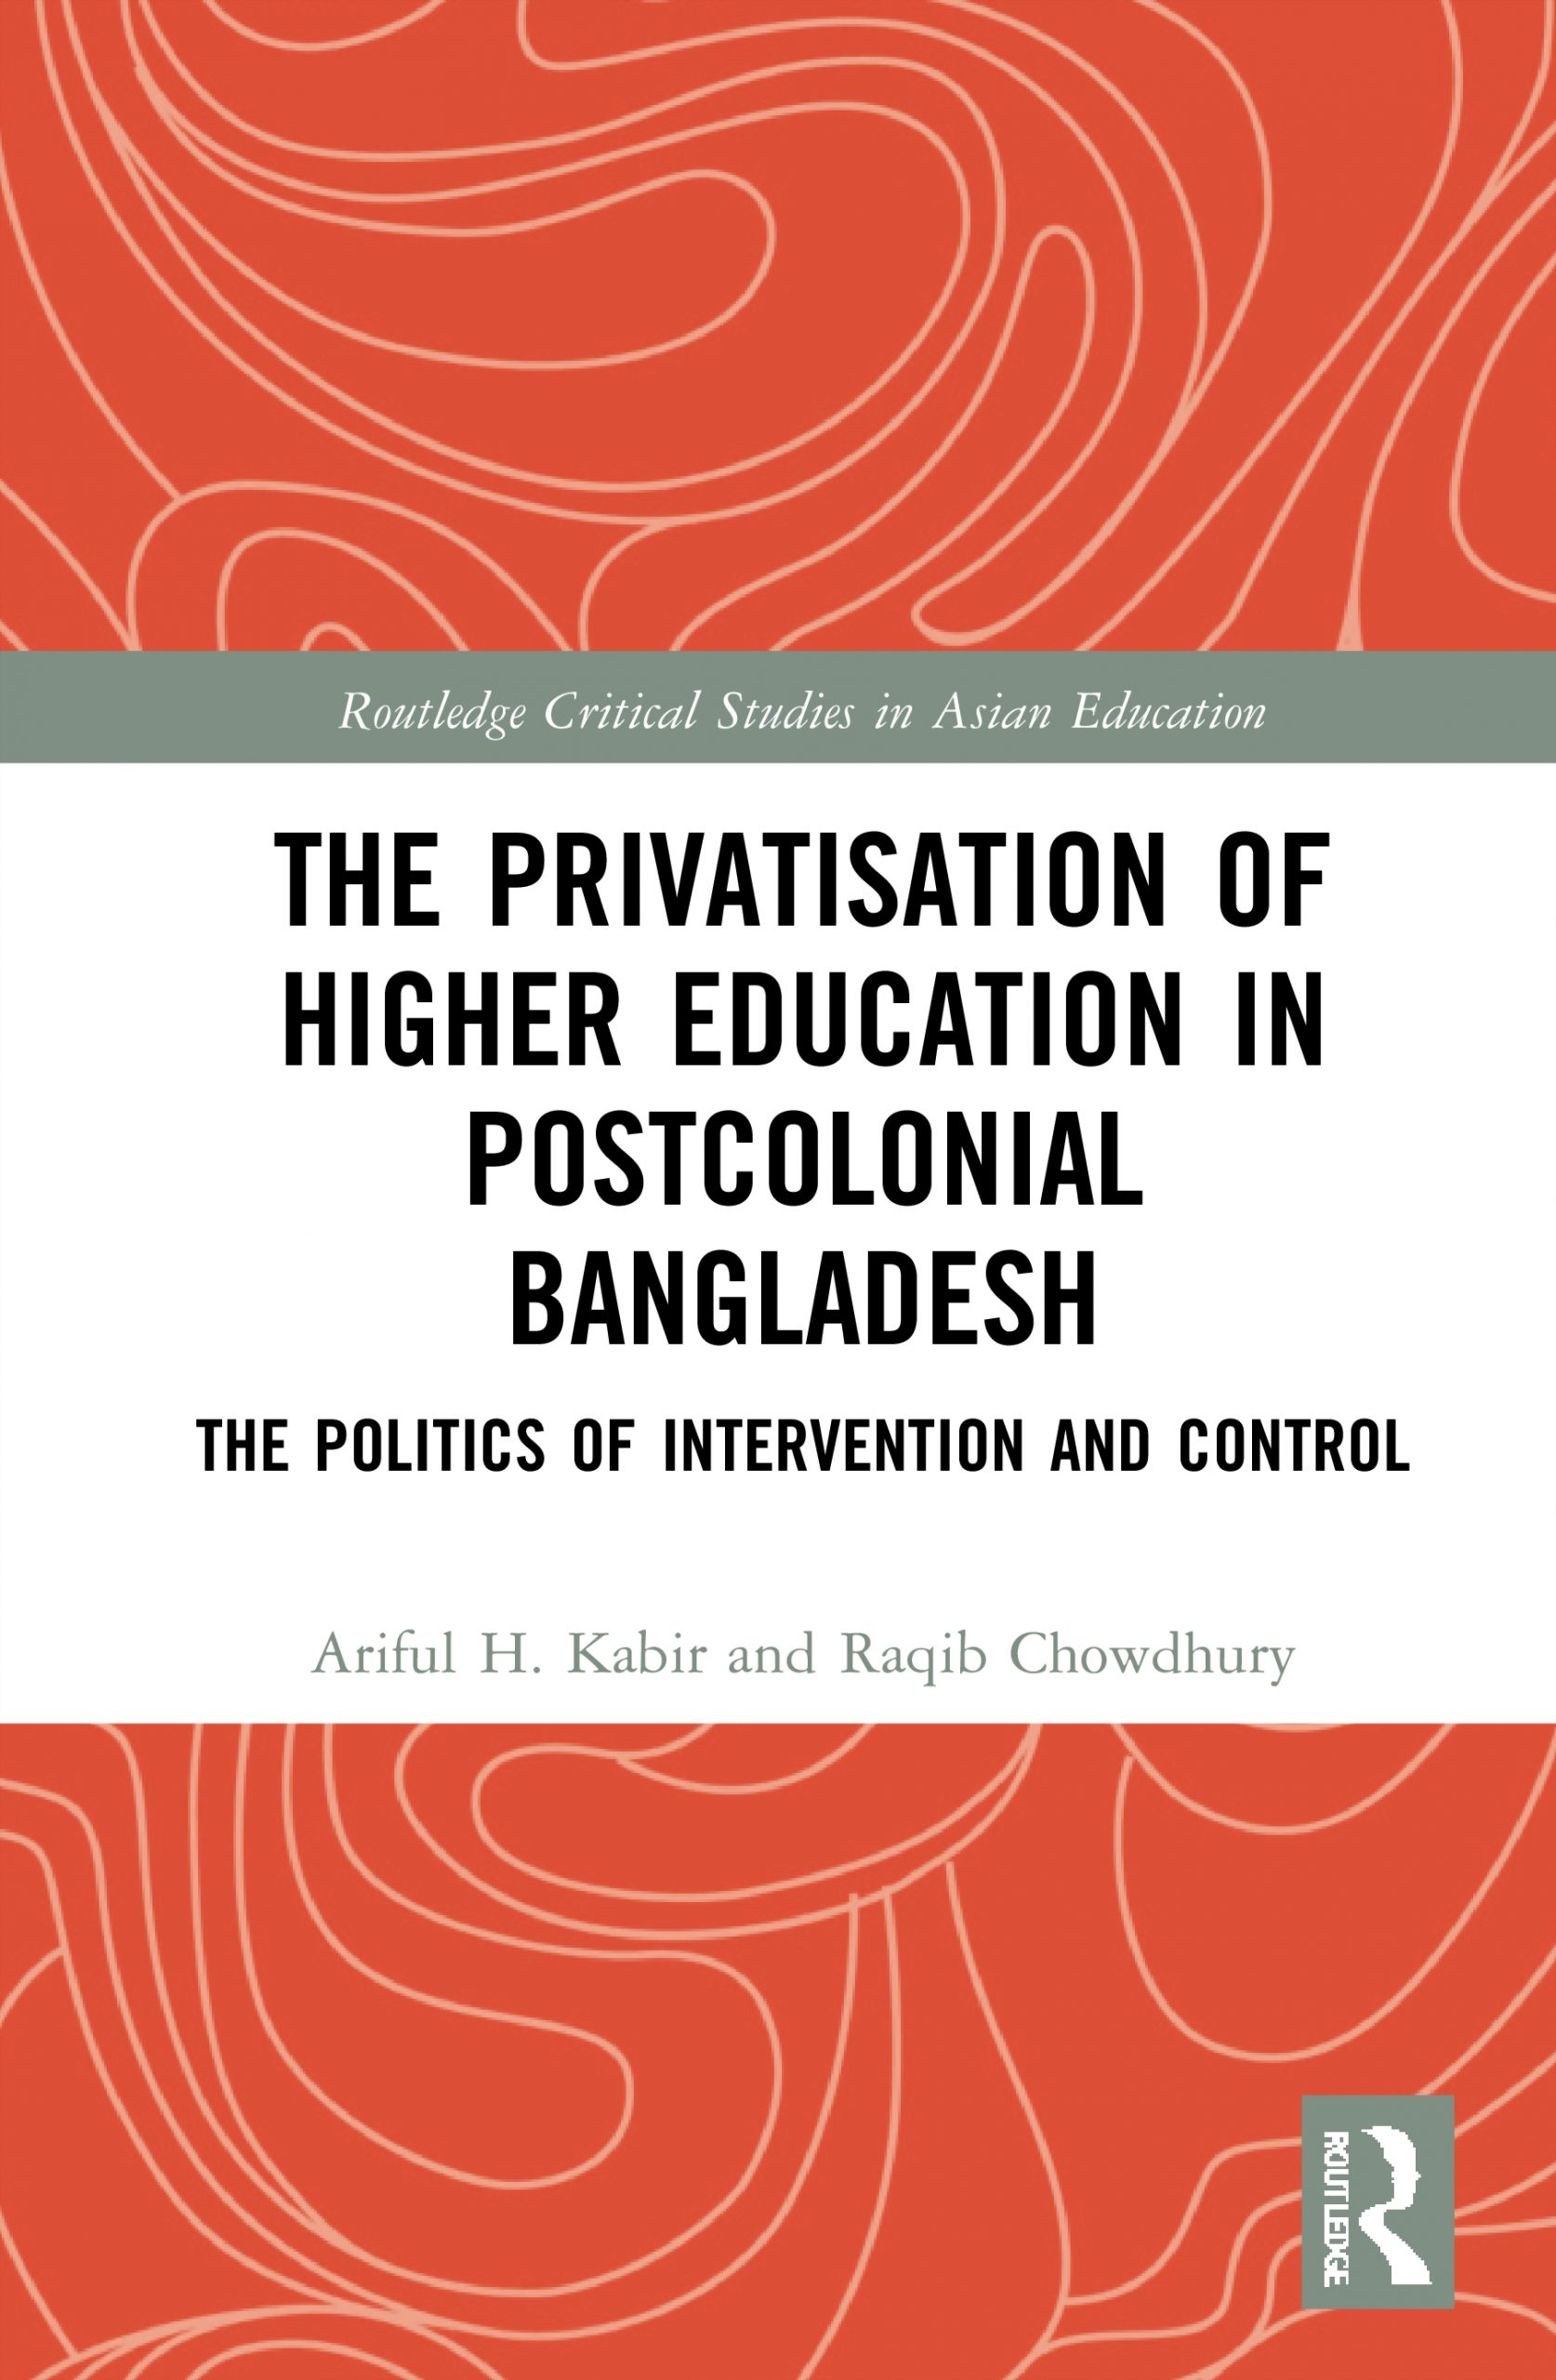 Routledge_The Privatisation of Higher Education in Postcolonial Bangladesh Politics of Intervention and Control